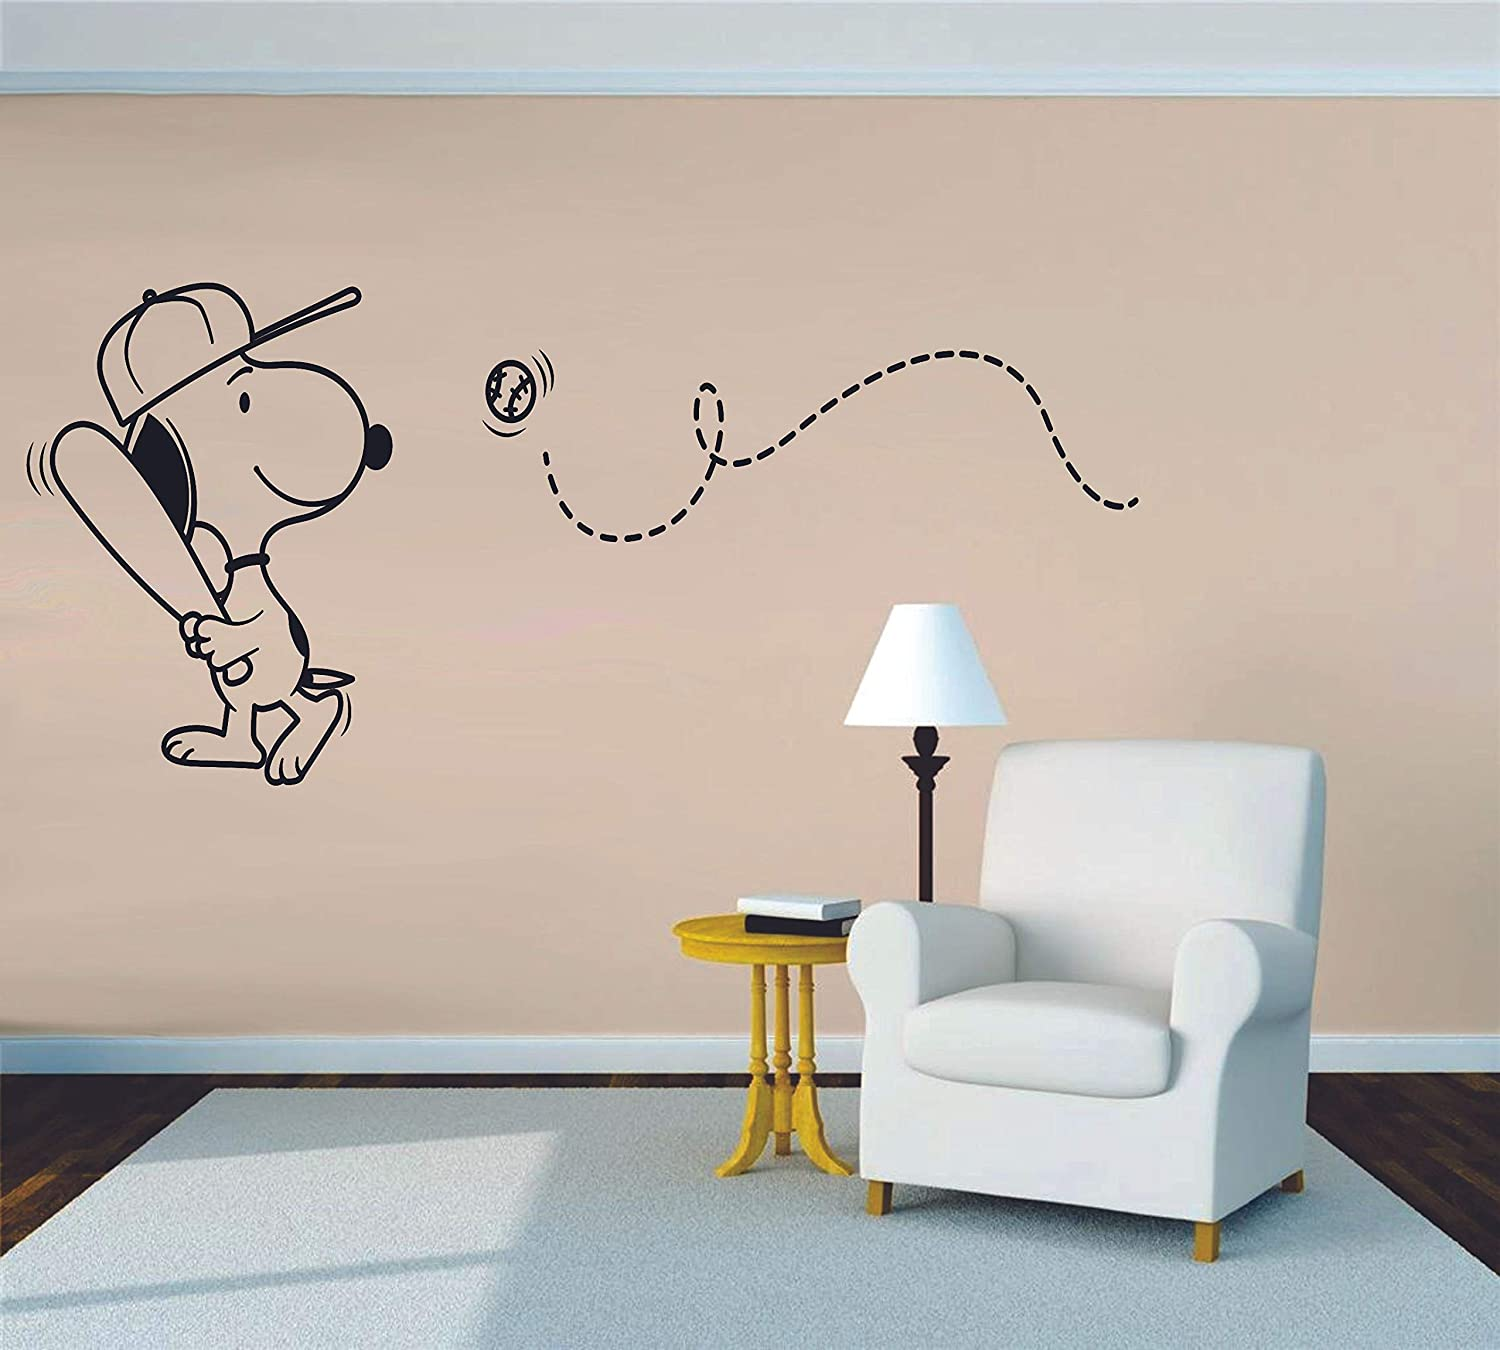 4x10 inch Size Snoopy Wall Decals for Kids Bedroom//Snoopy Dog Boy Room Decor//Vinyl Art Stickers Decal Childrens Rooms//The Peanuts Movie Cartoon Character Baseball Sports Fun Dogs Decoration